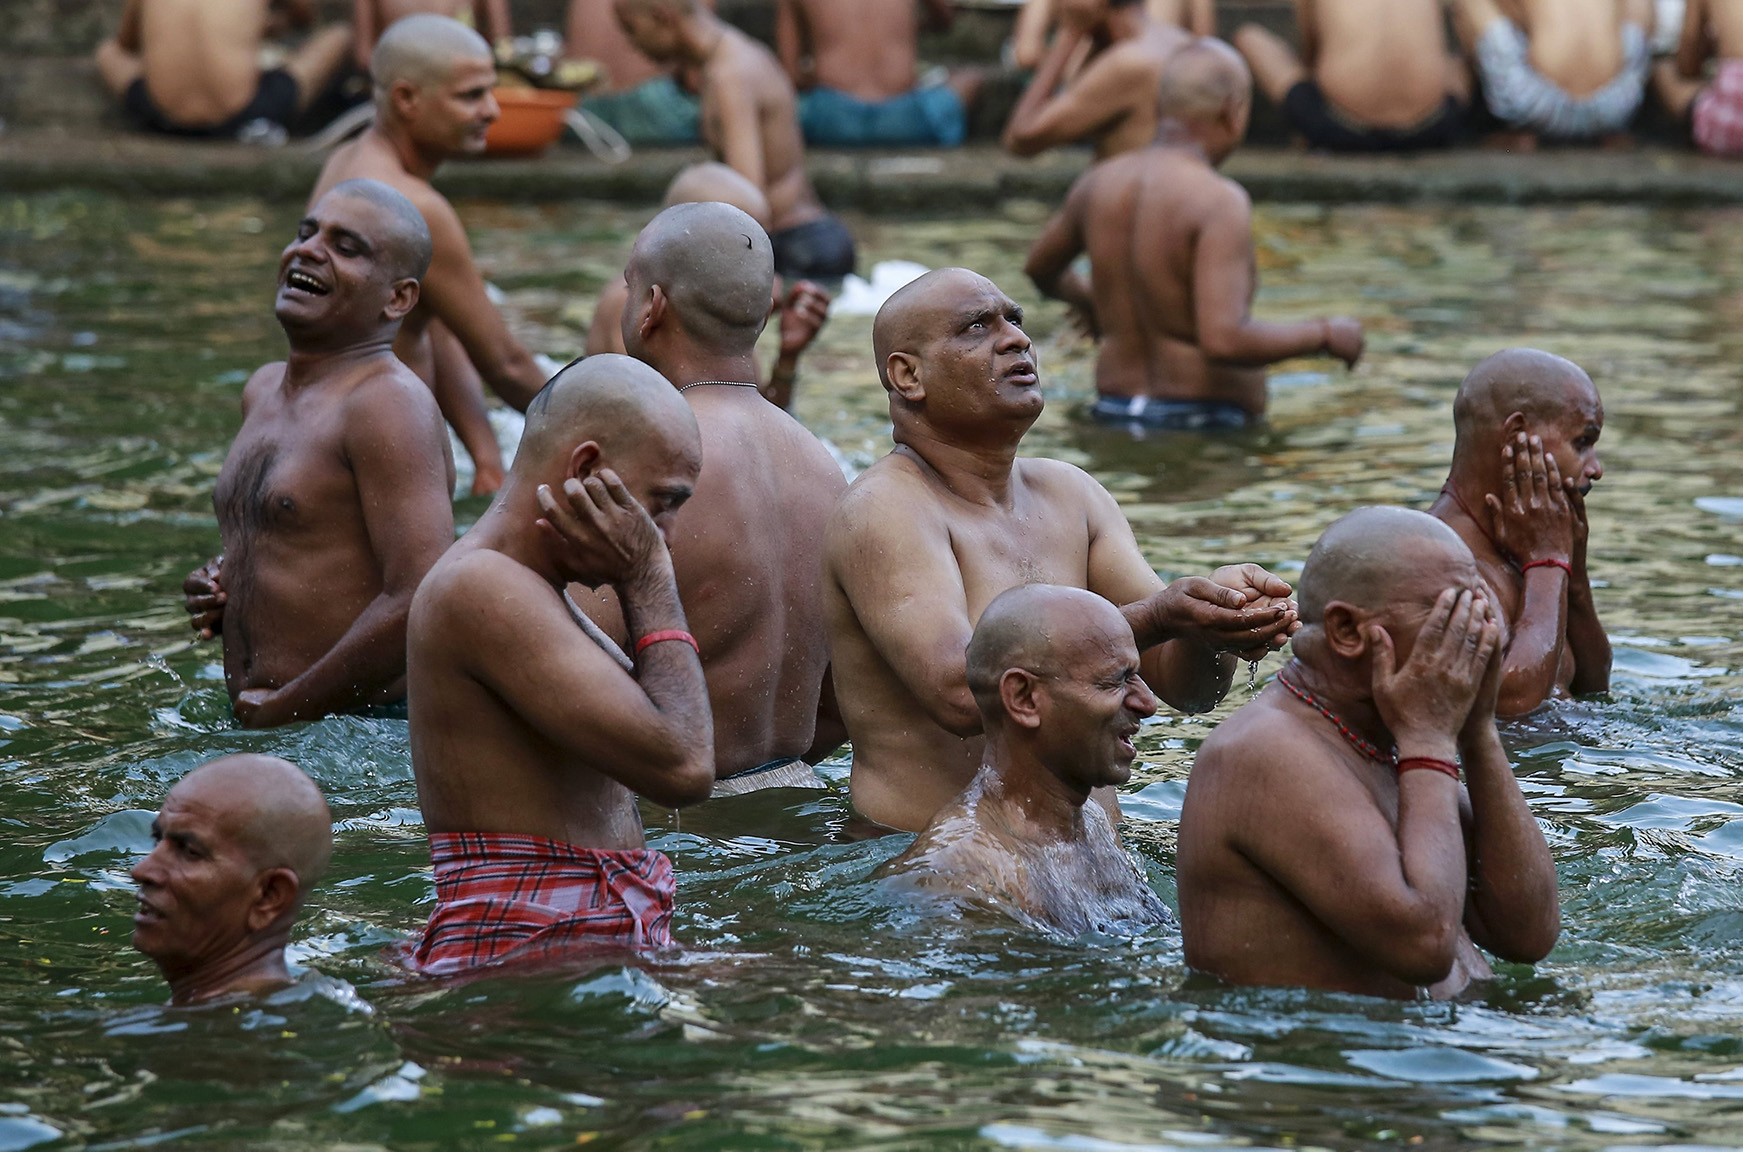 Hindu devotees pray in a holy pond on the auspicious day of Mahalaya in Mumbai